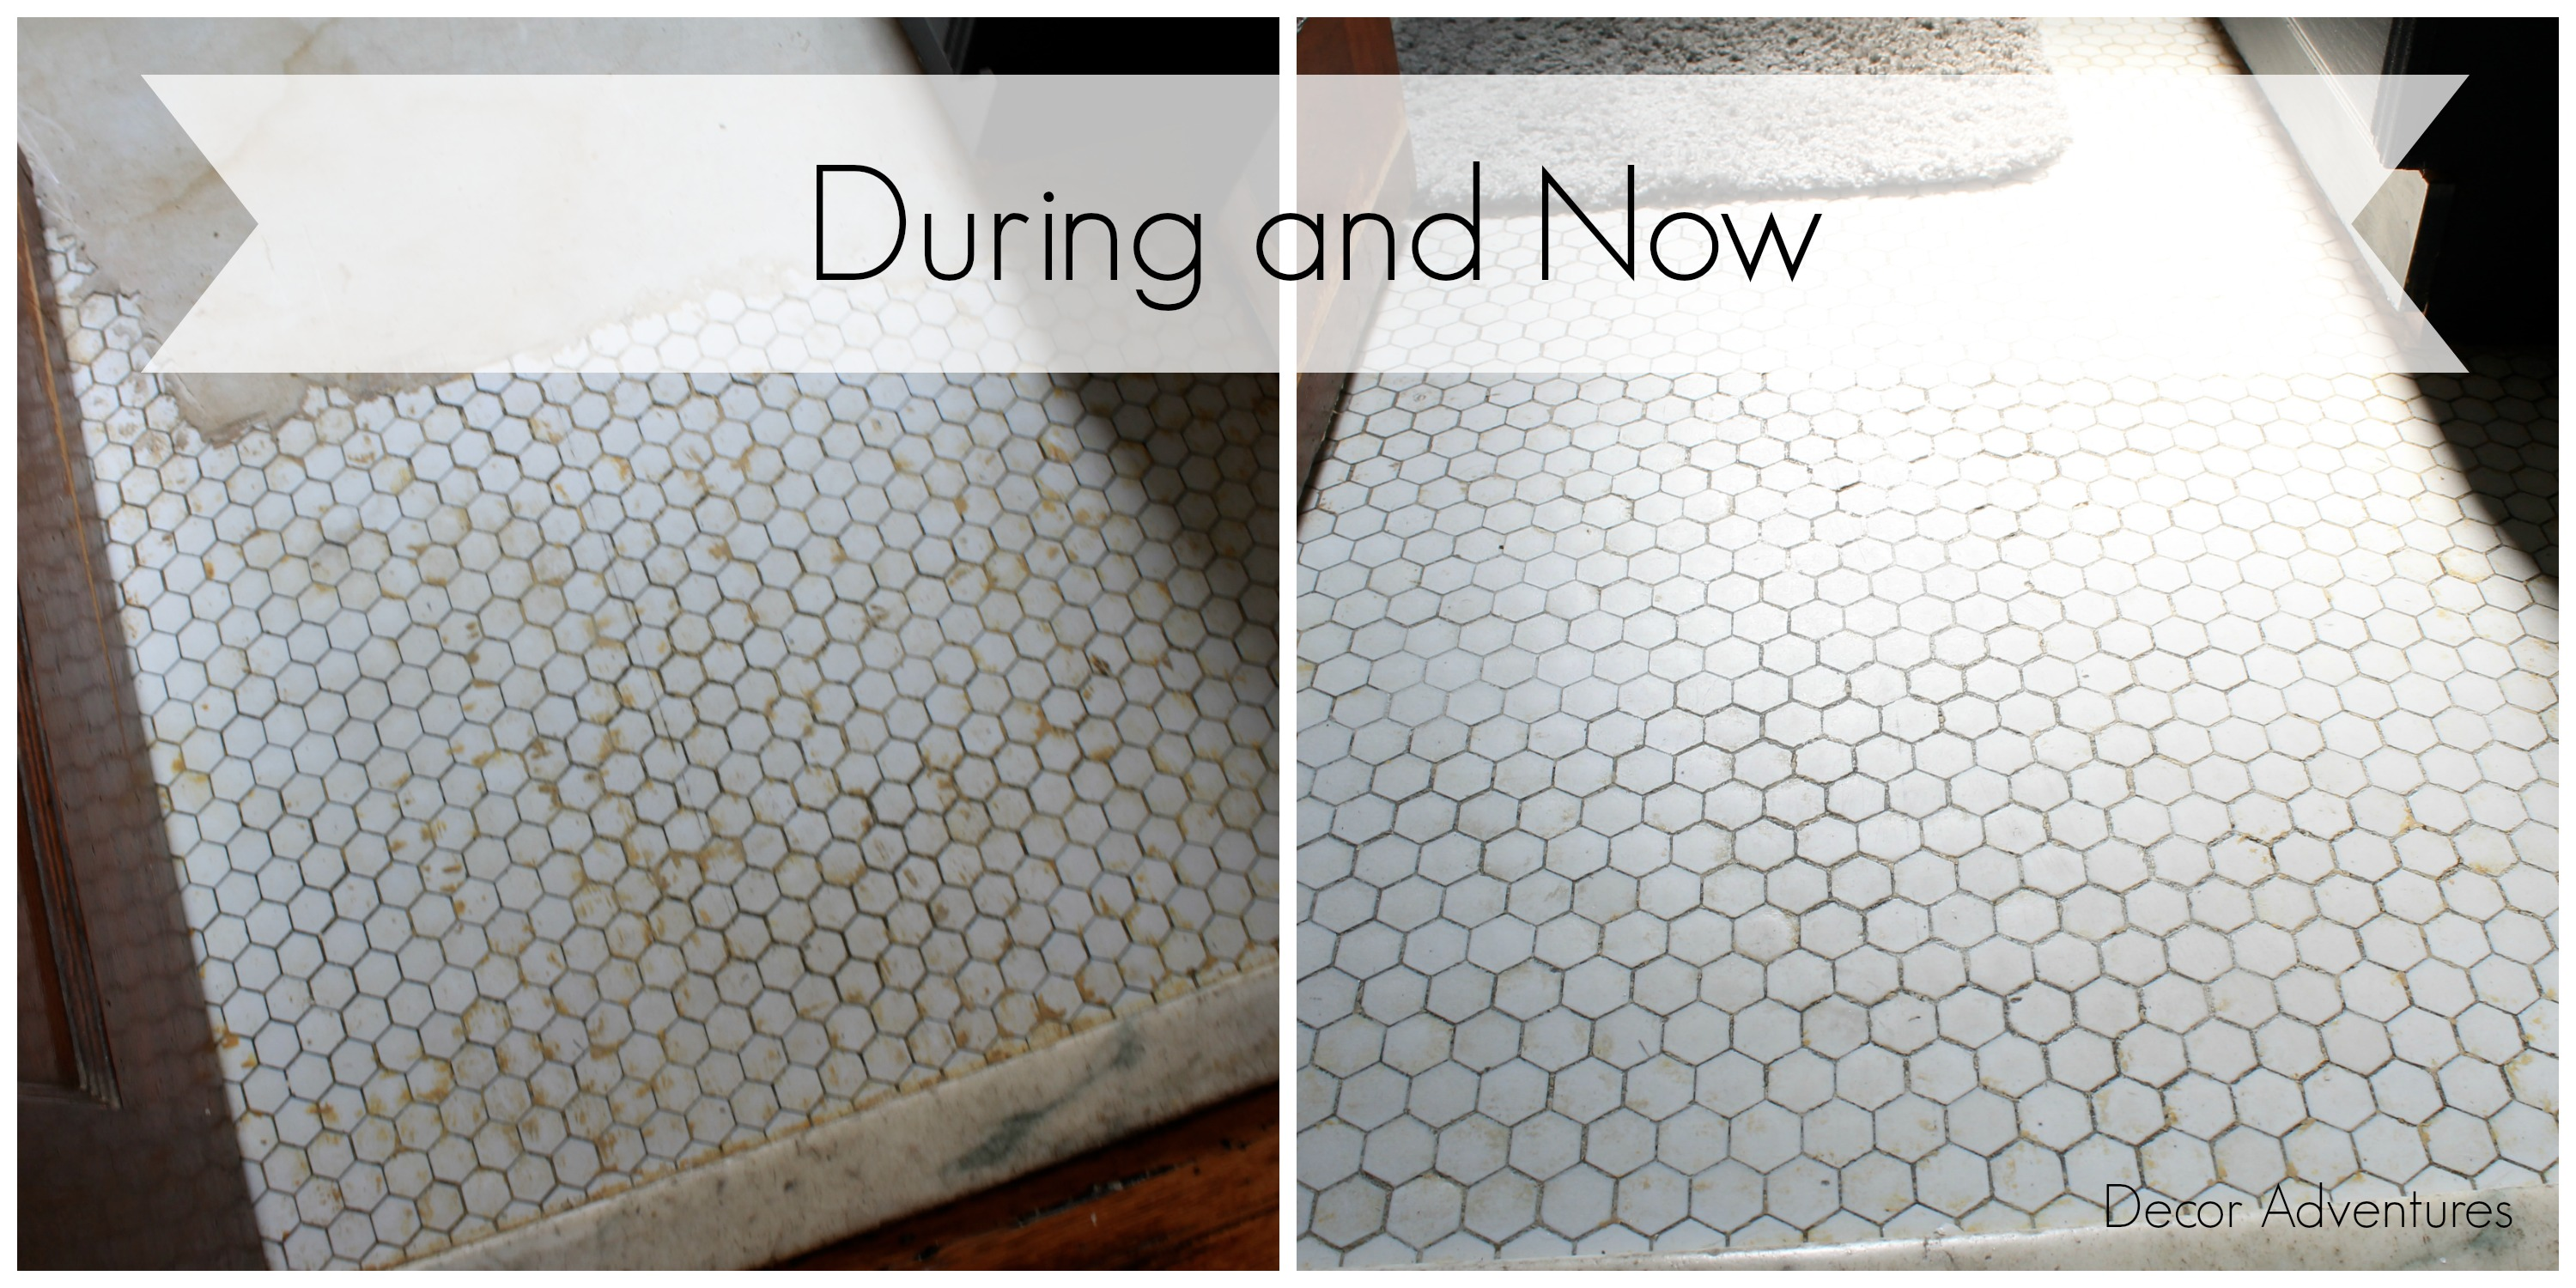 Uncovering A Hex Tile Floor Before After Decor Adventures - Honeycomb tile bathroom